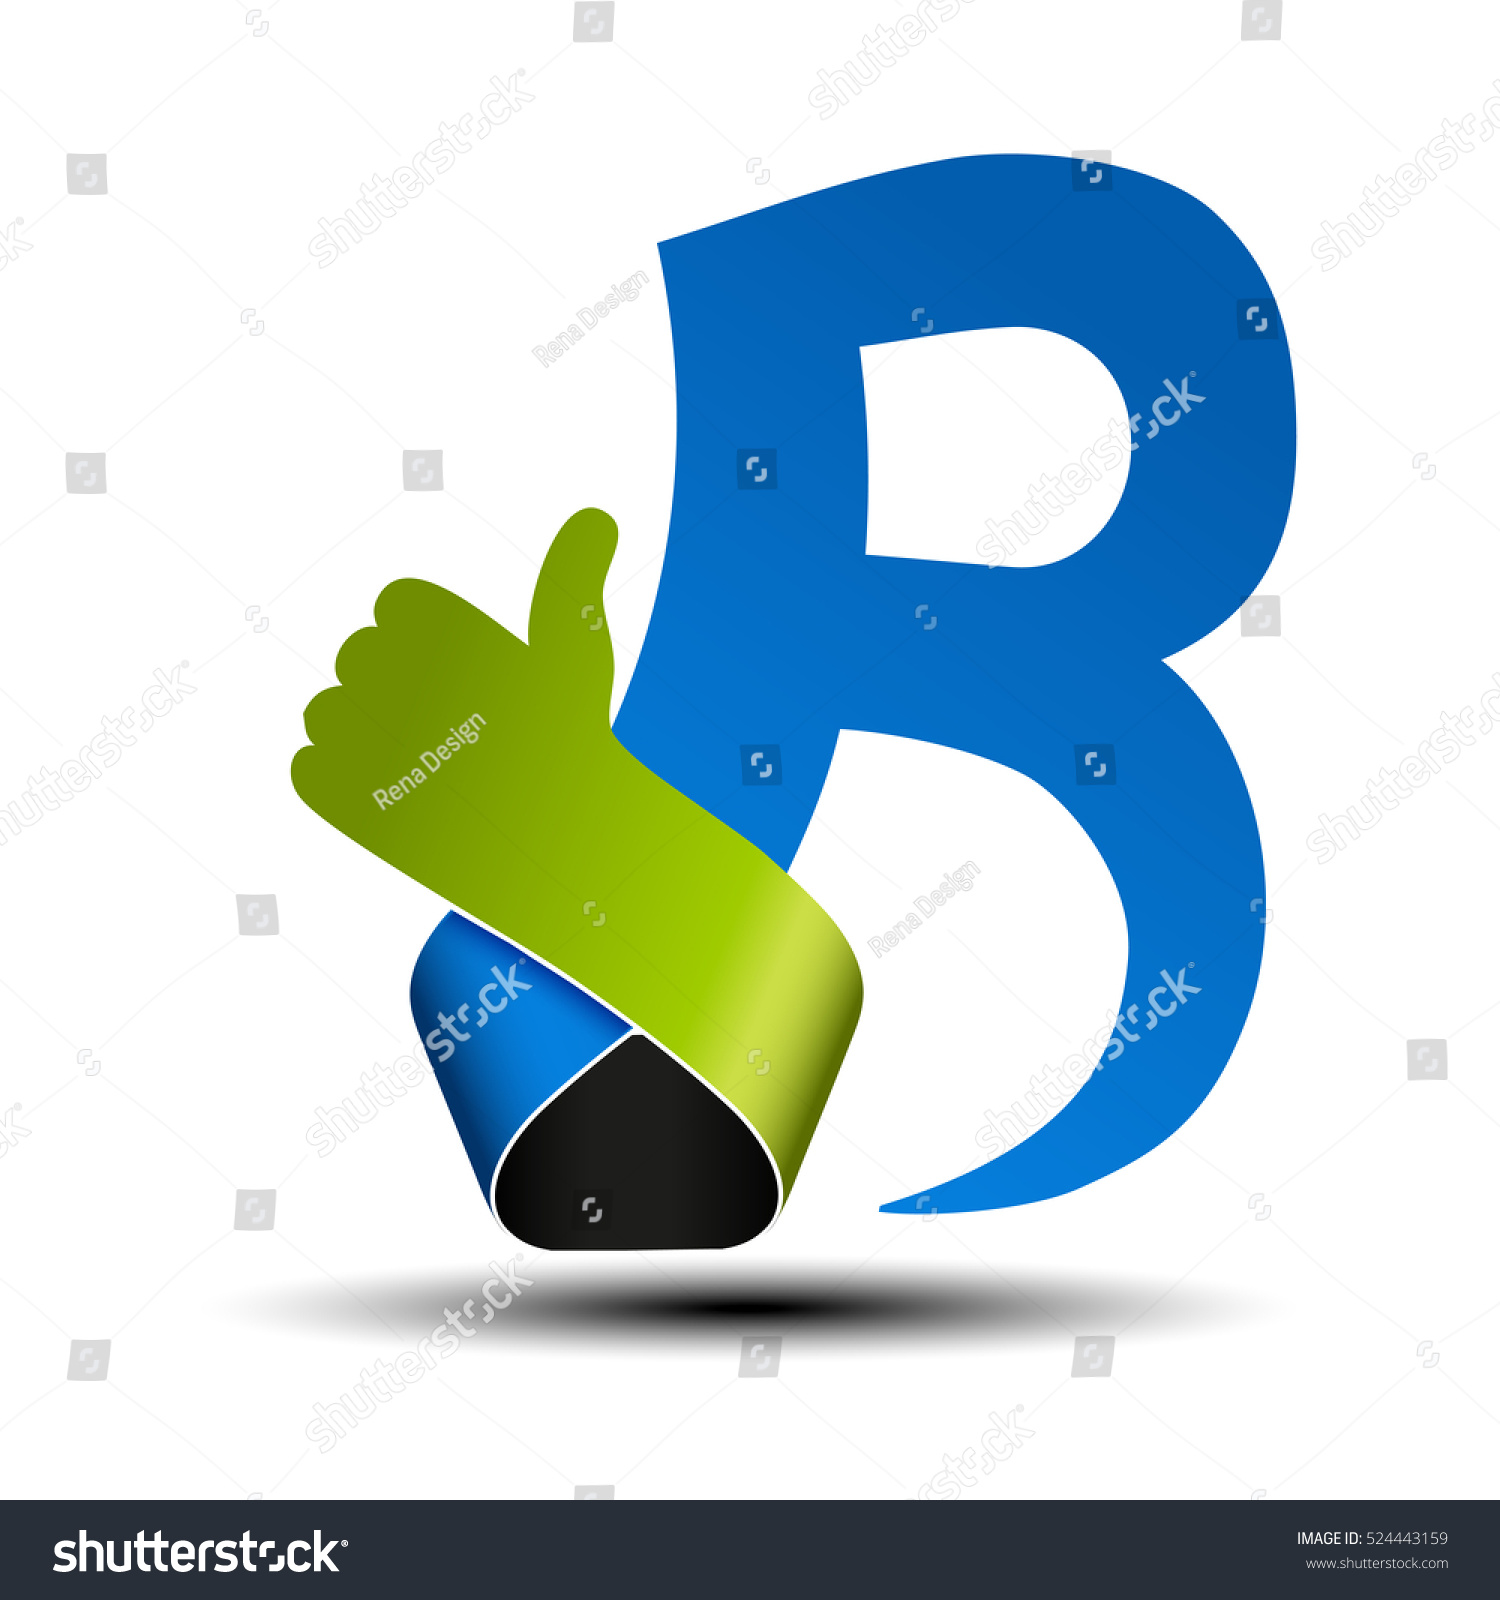 Image result for letter B is best